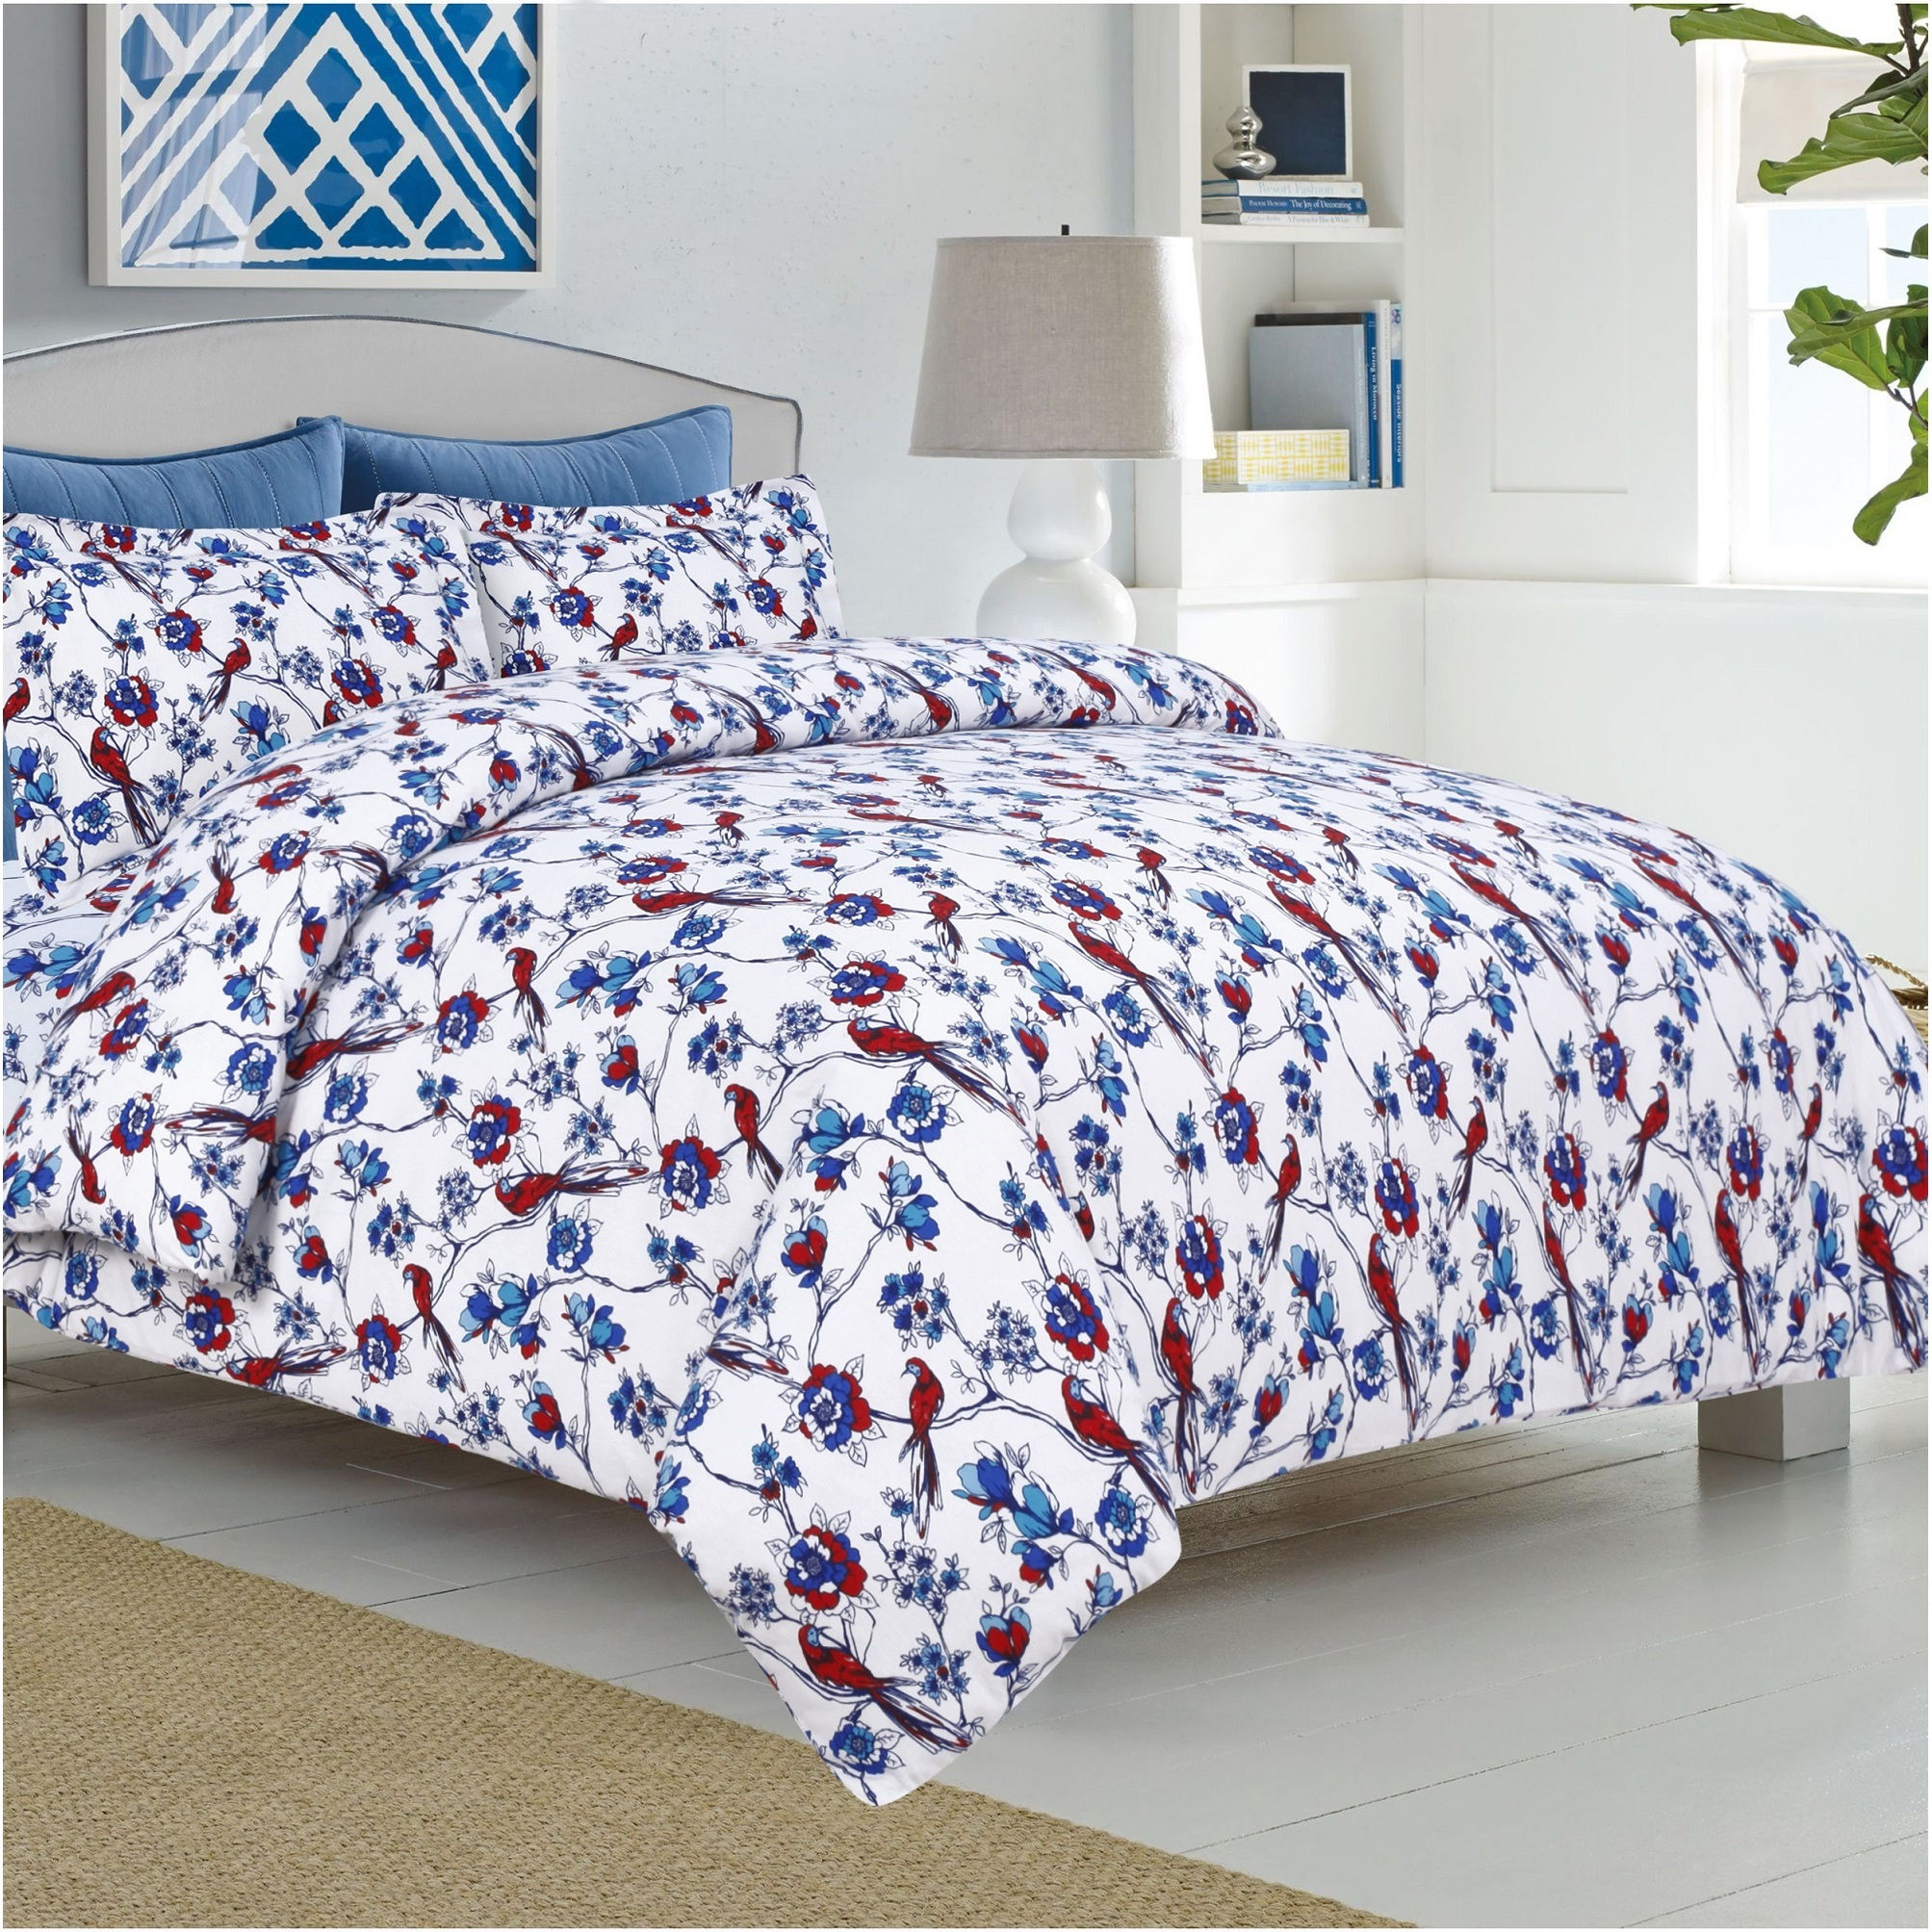 Tribeca Living Bird Park Flannel 3-piece Duvet Cover Set